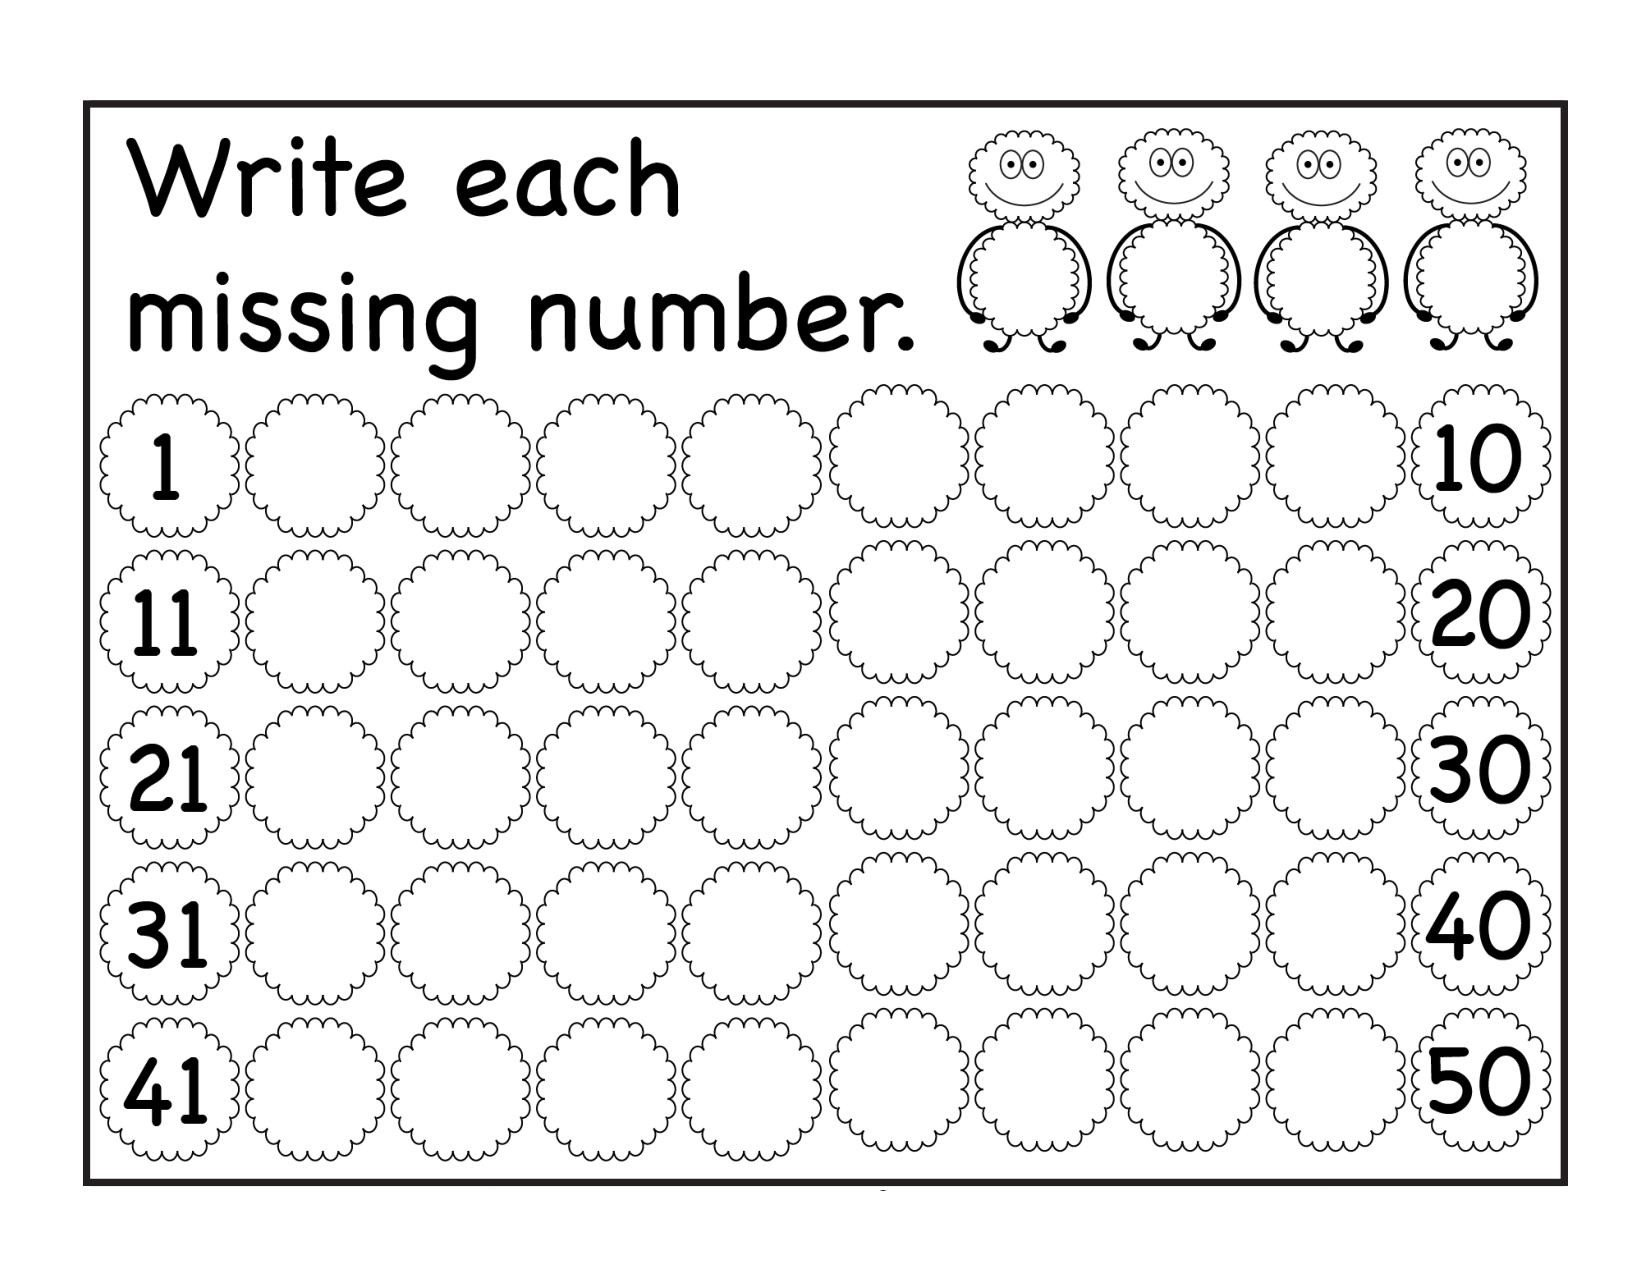 missingnumbers creature 1to50 1 page 001